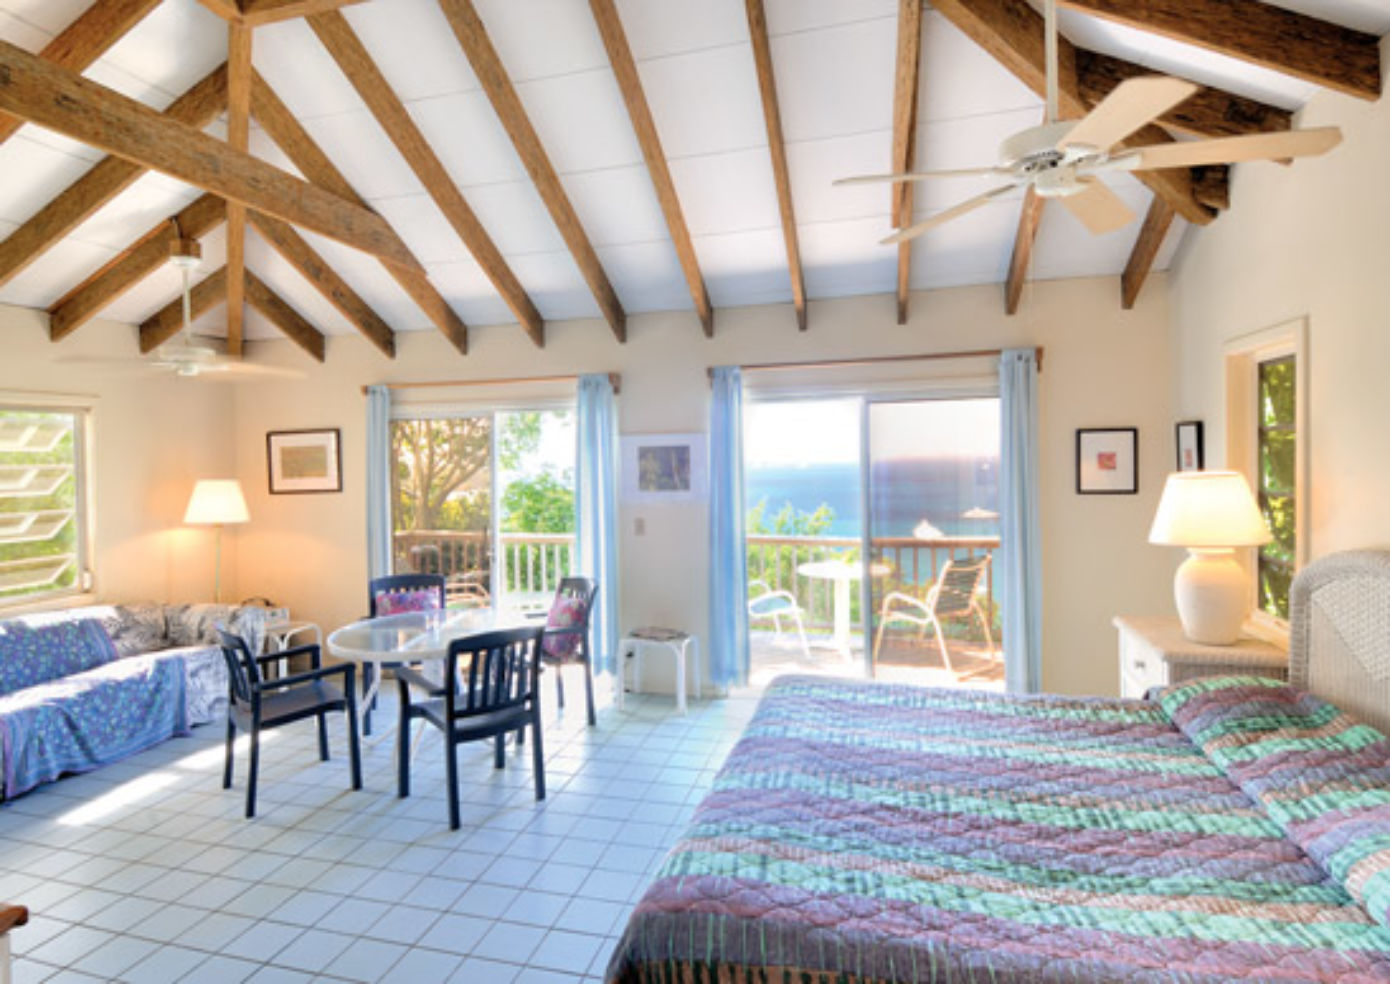 Harmony Studios, 12 airy apartments nearby Maho Bay Camps, have kitchenettes, lofted ceilings, and large decks with water views.